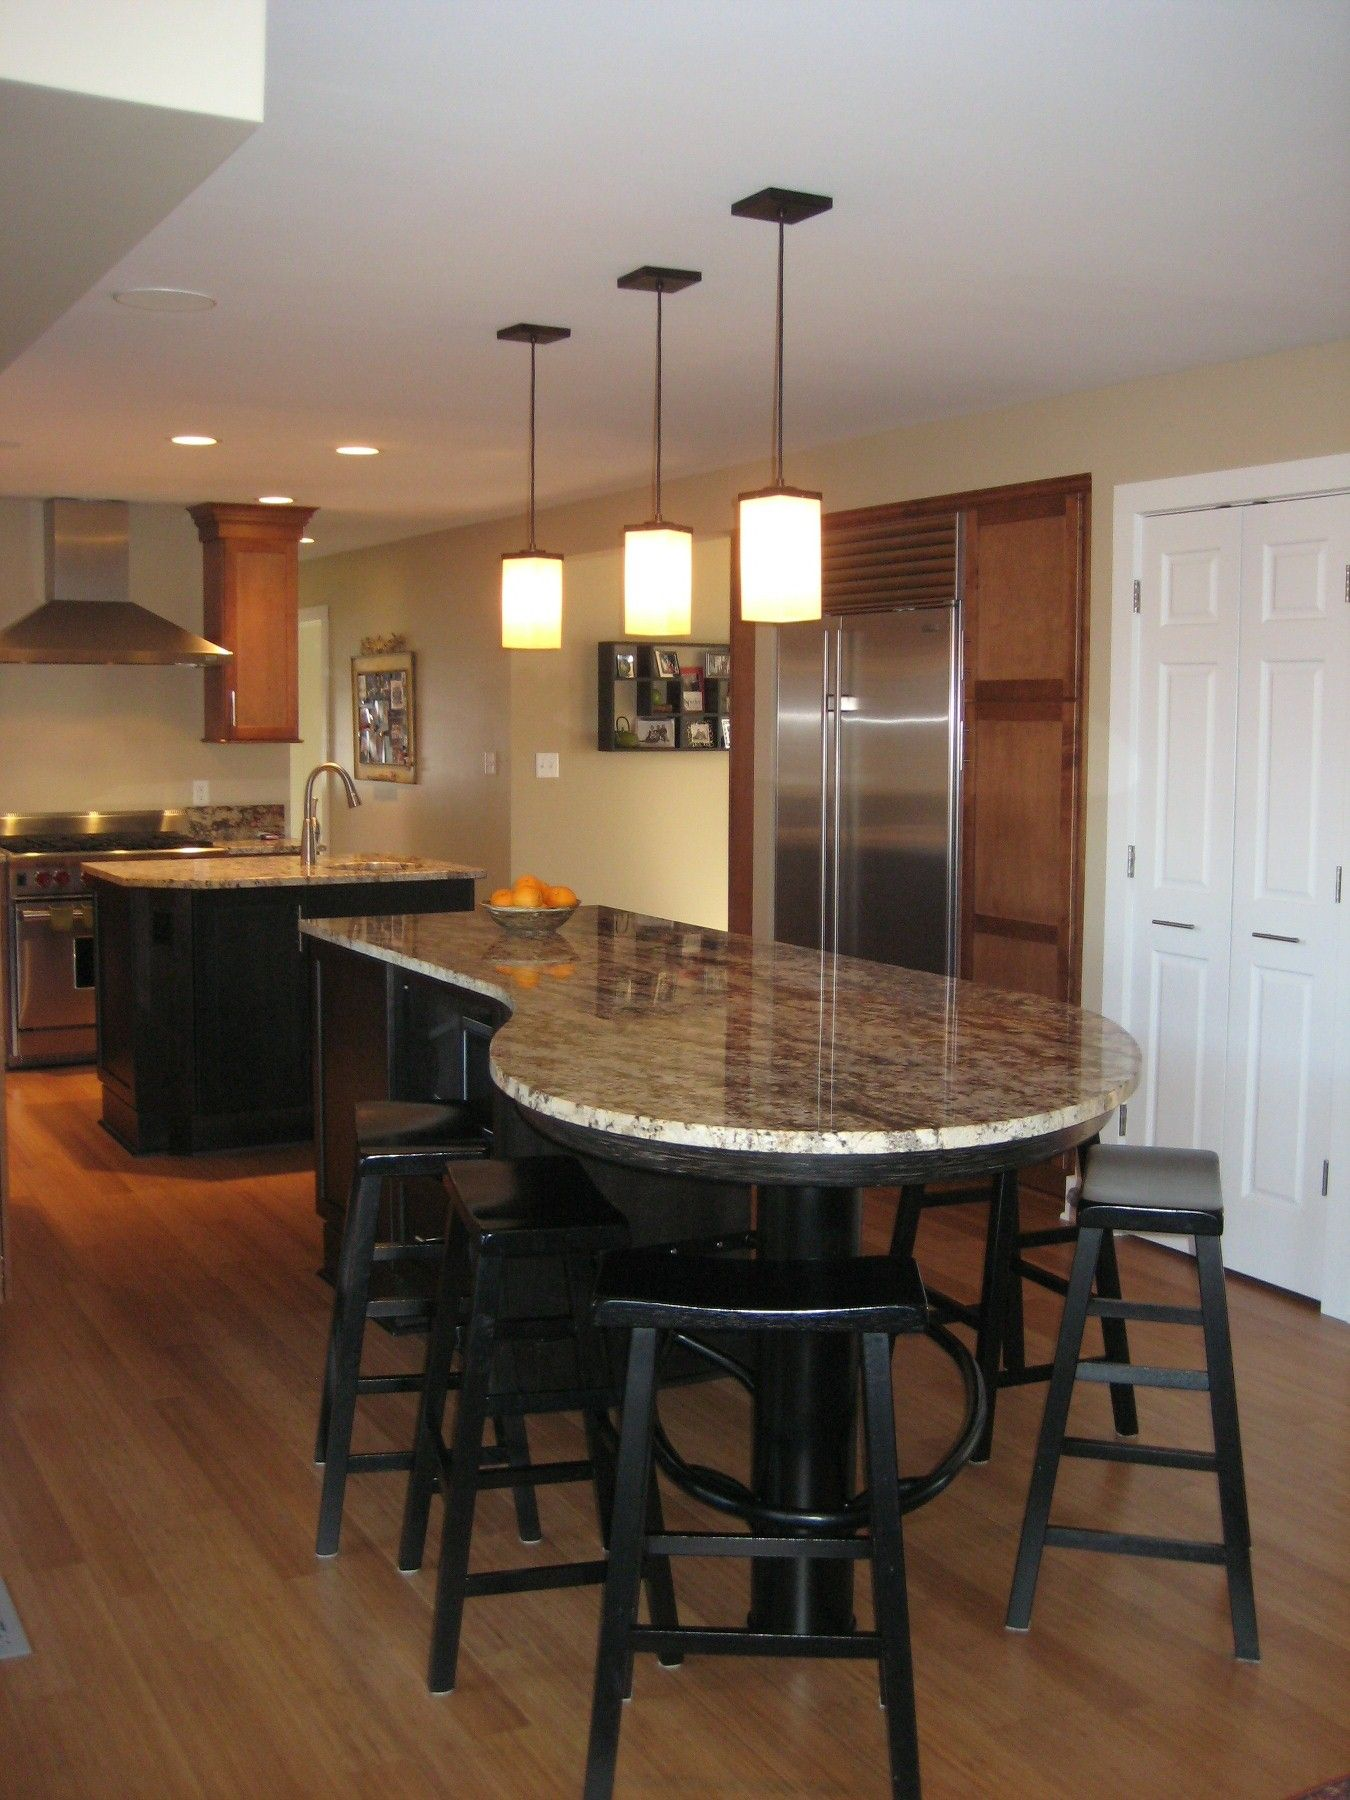 Kitchen Island With Seating Long Kitchen Islands With Seating Island Seating For 5